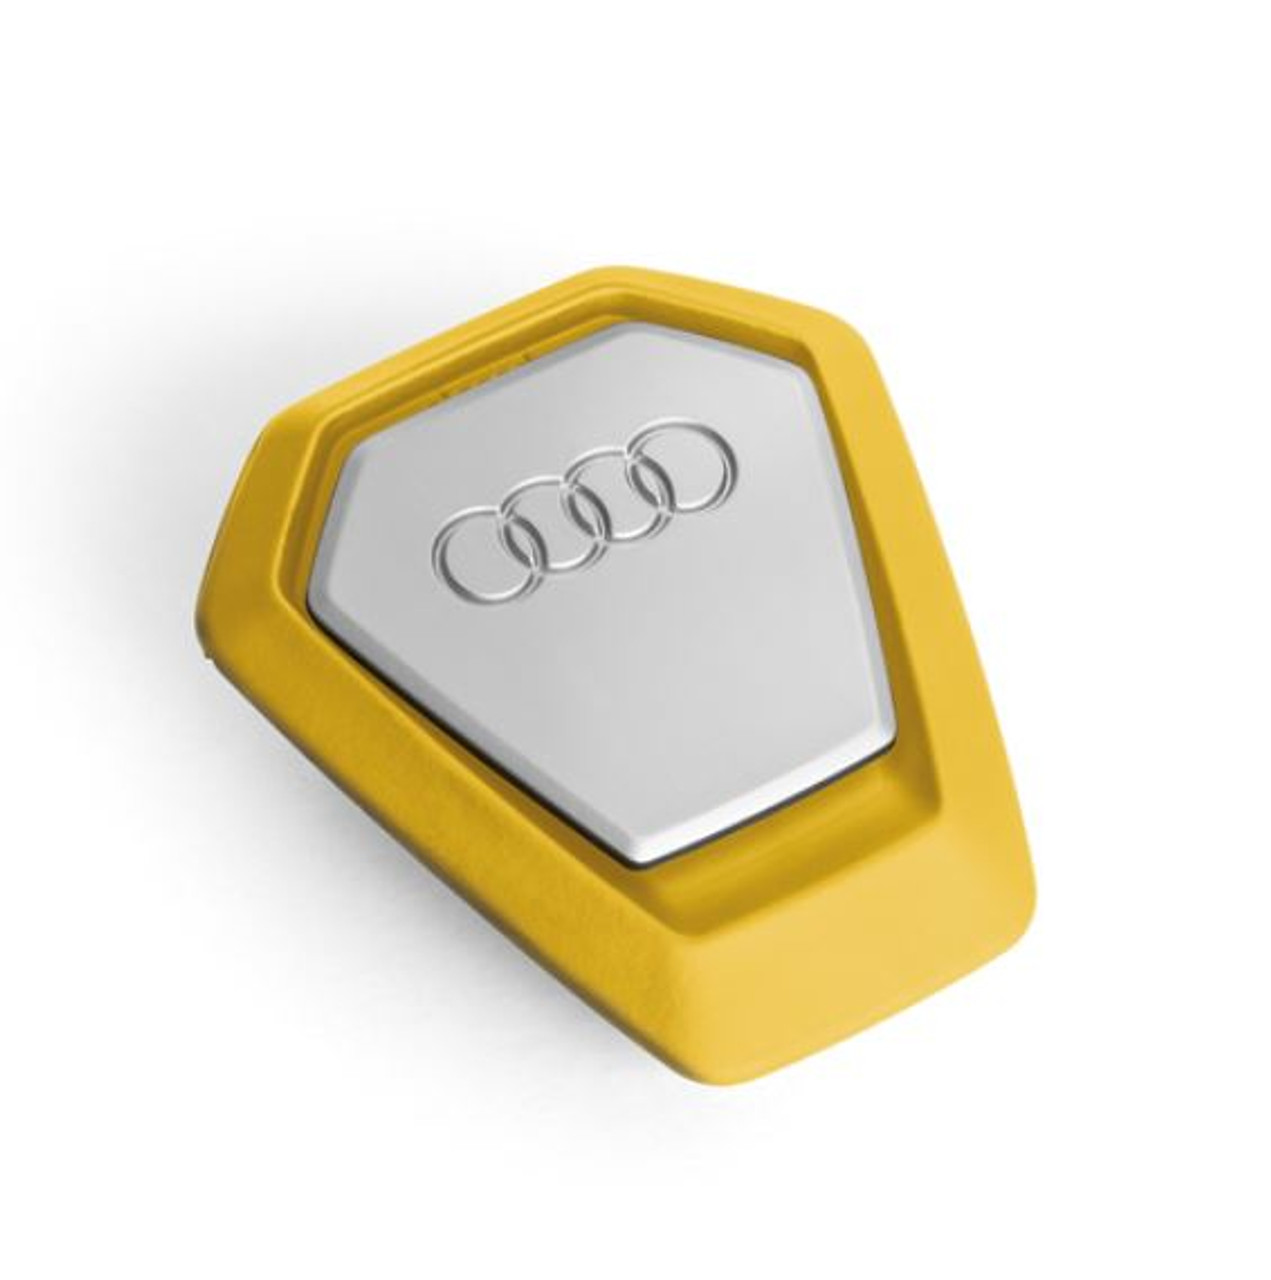 Genuine Audi Air freshener dispenser, yellow, invigorating